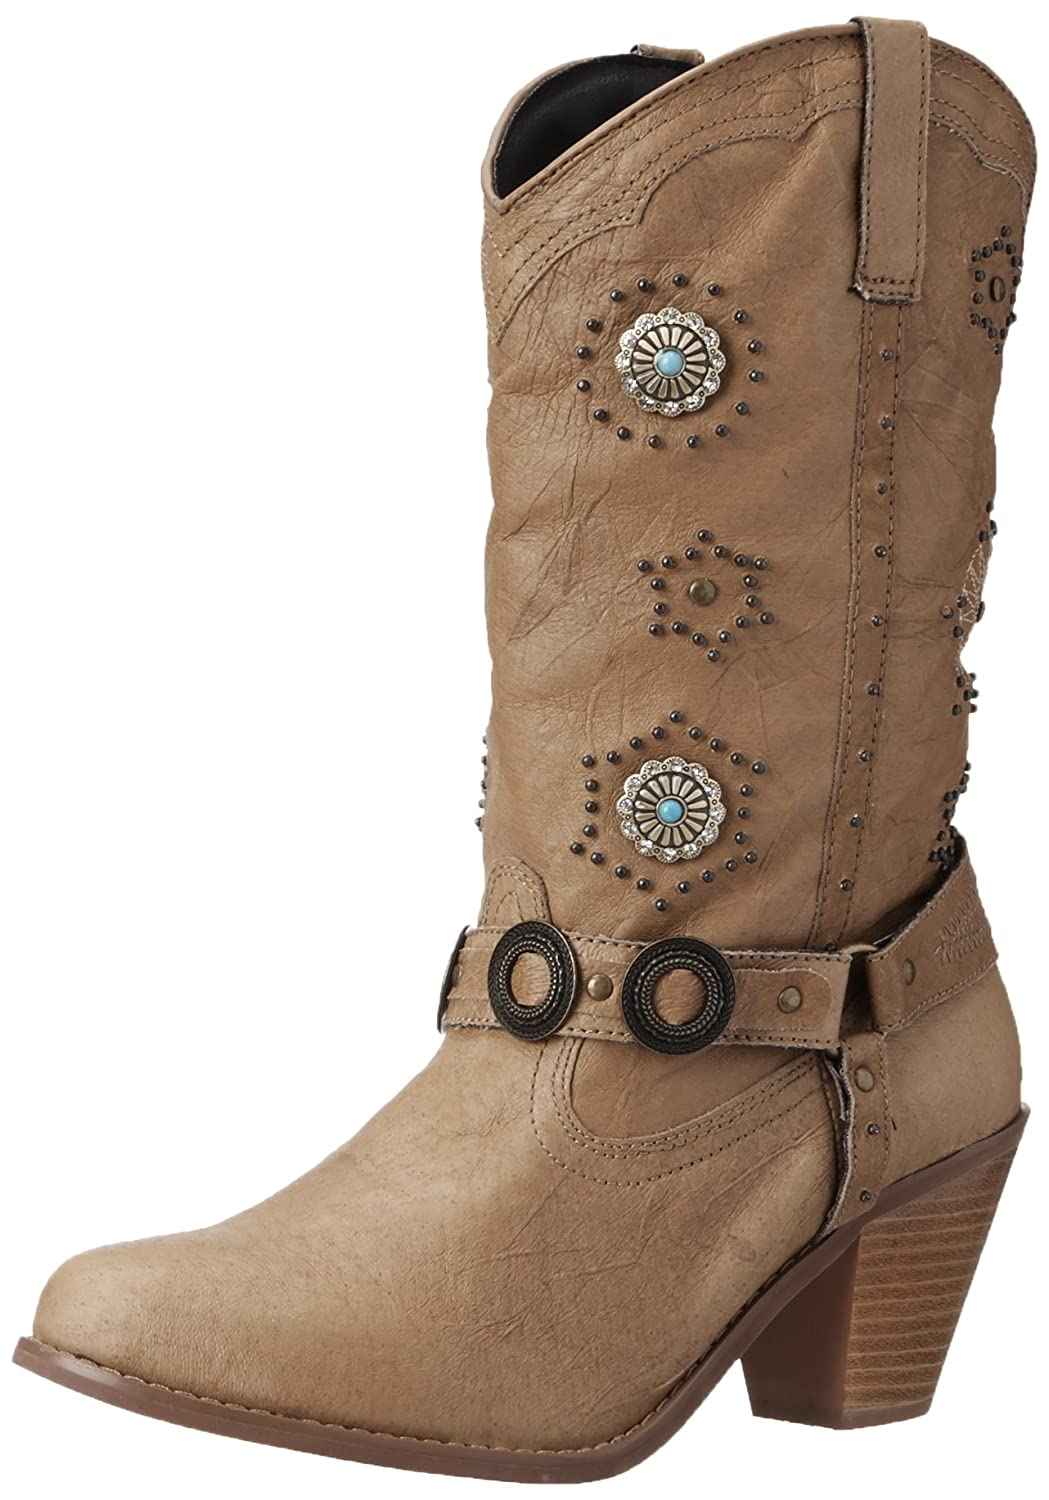 Dingo Women's Addie Boot B000KN5G56 10 B(M) US|Chestnut